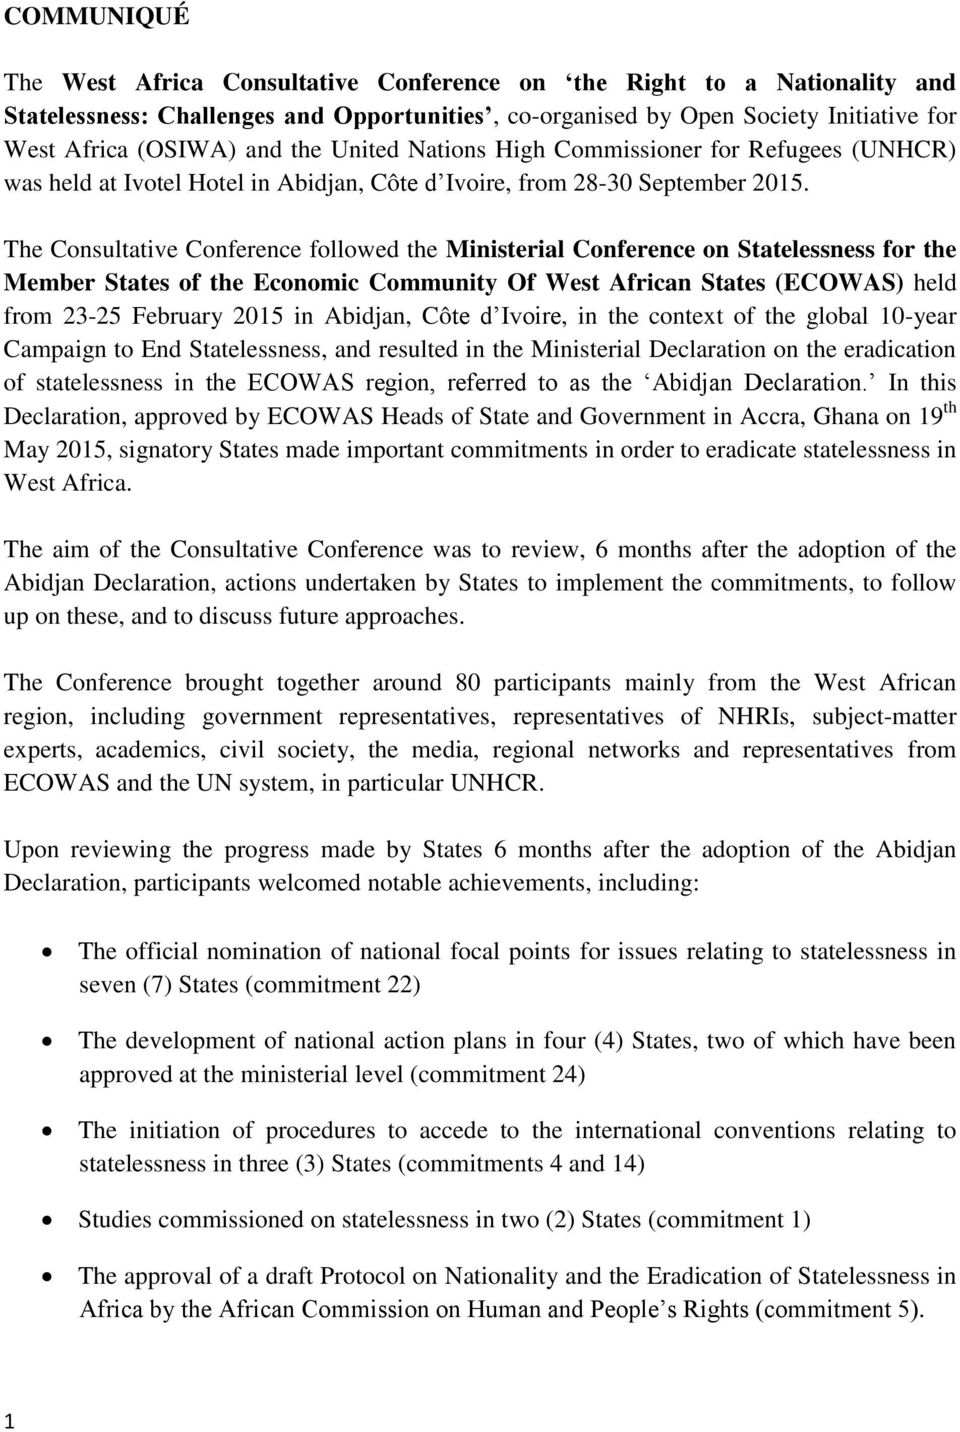 The Consultative Conference followed the Ministerial Conference on Statelessness for the Member States of the Economic Community Of West African States (ECOWAS) held from 23-25 February 2015 in